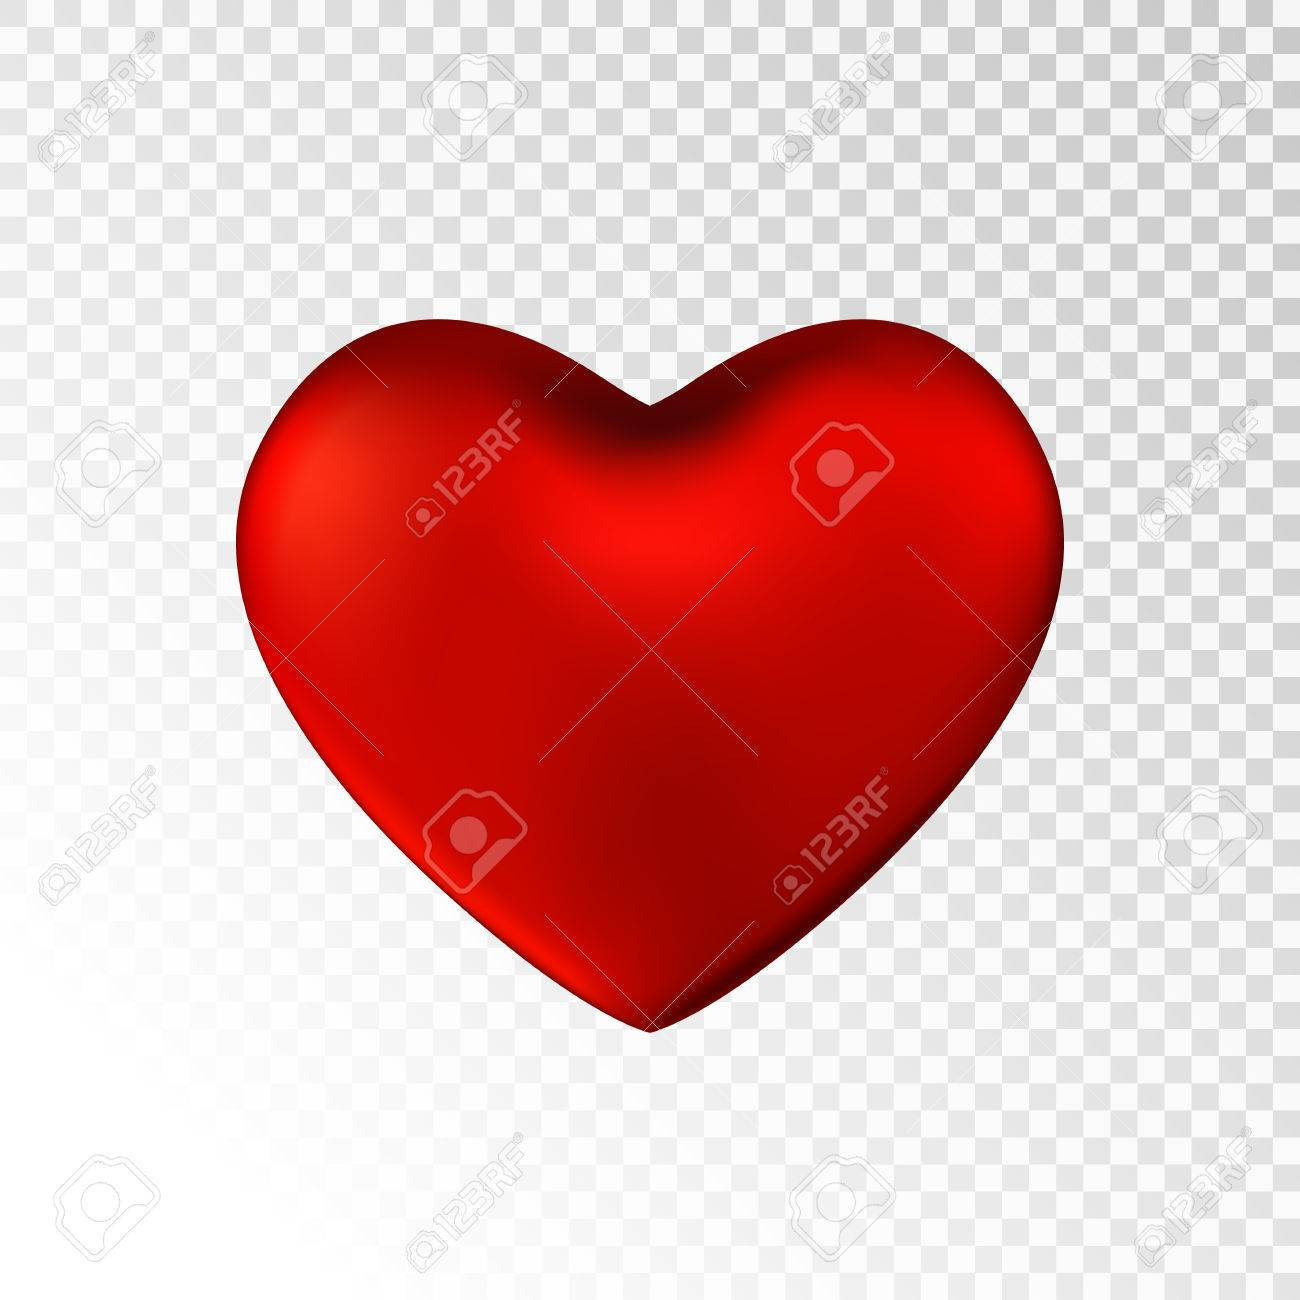 photo stock vector red heart isolated on transparent background happy valentine s day greeting template